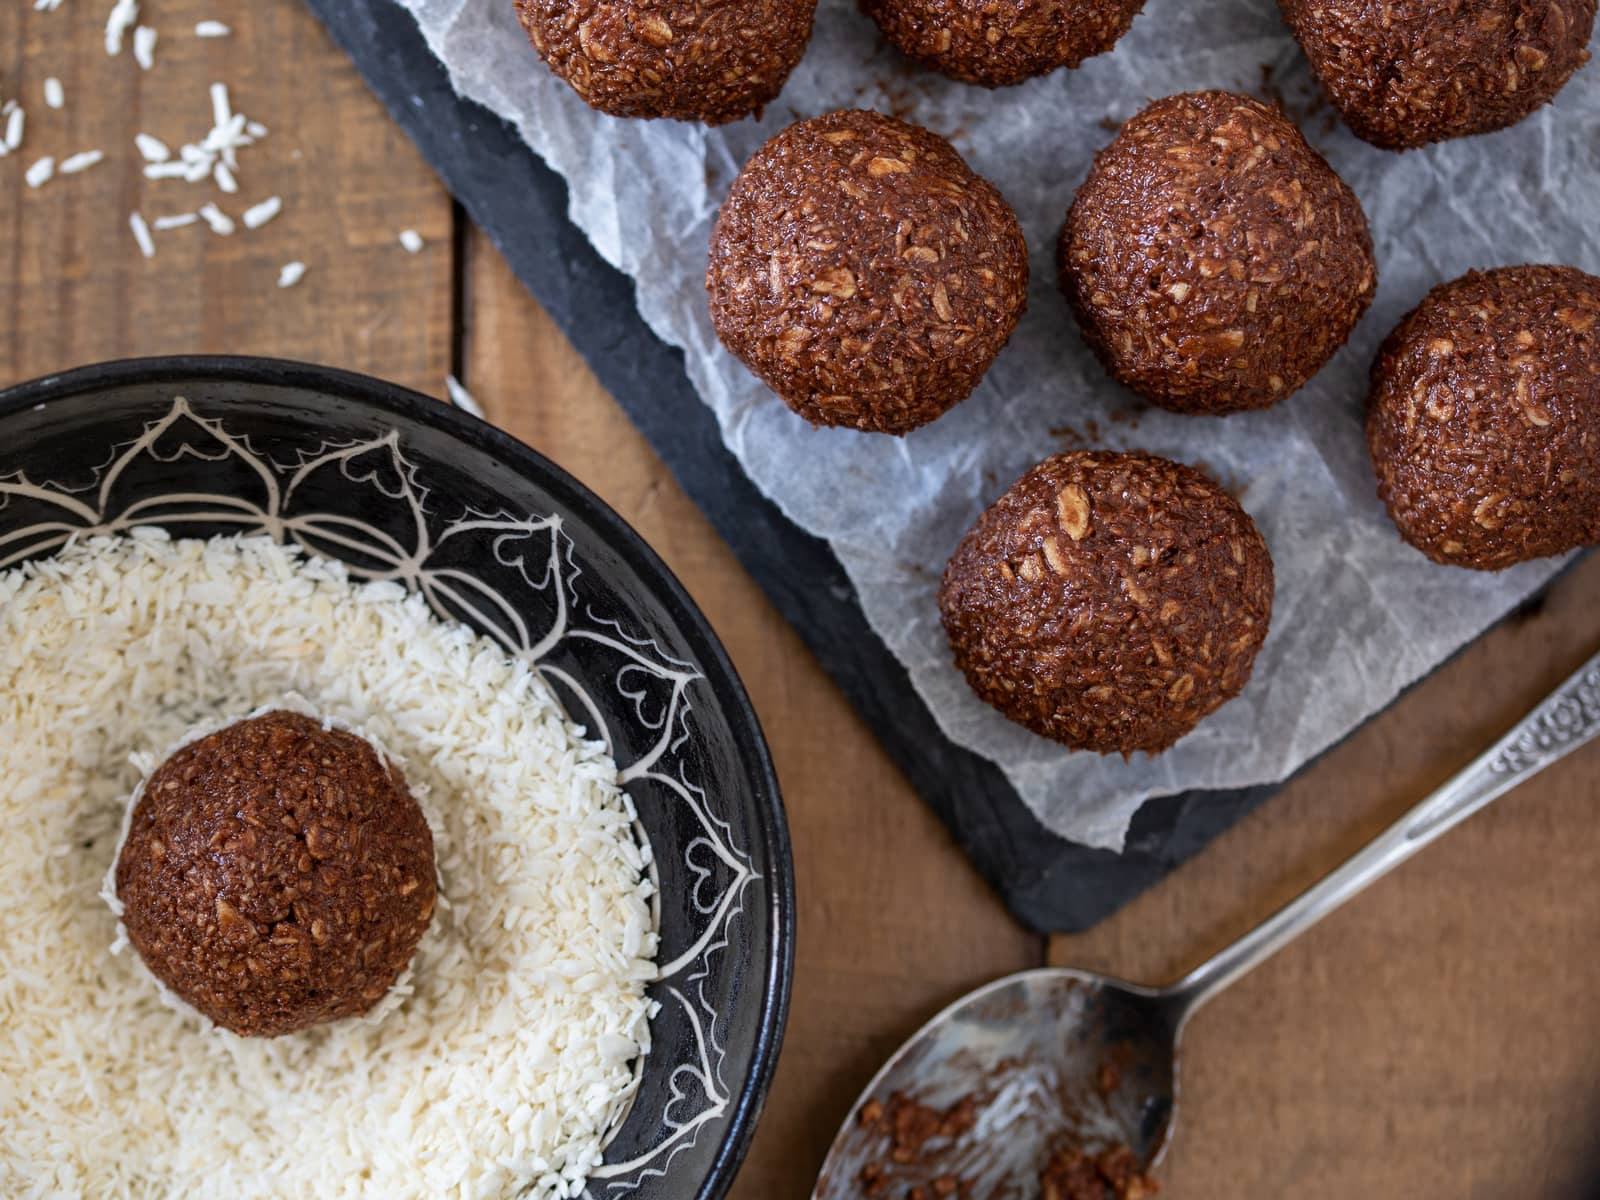 Chocolate oatmeal balls being tossed in shredded coconut.